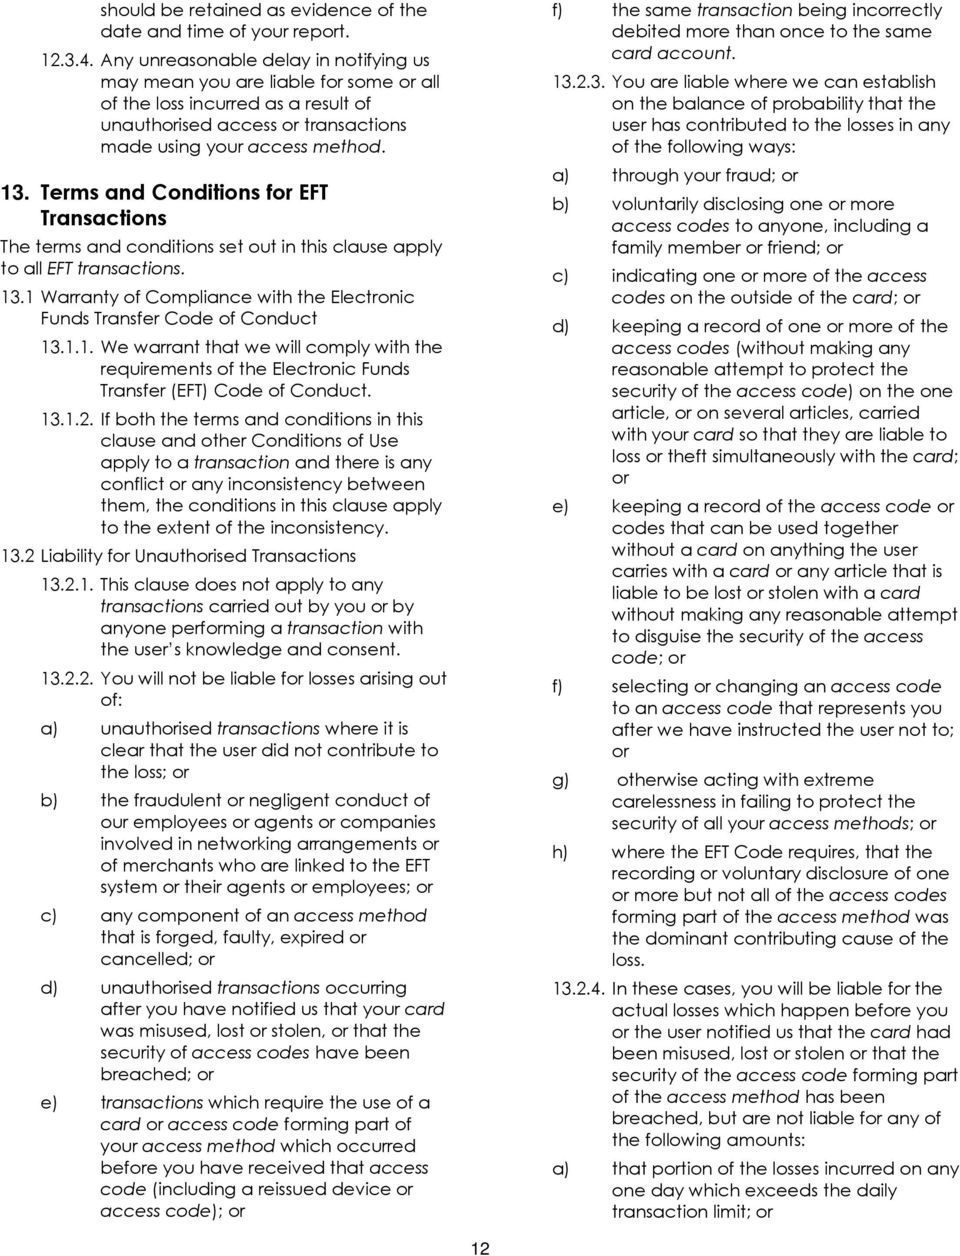 Terms and Conditions for EFT Transactions The terms and conditions set out in this clause apply to all EFT transactions. 13.